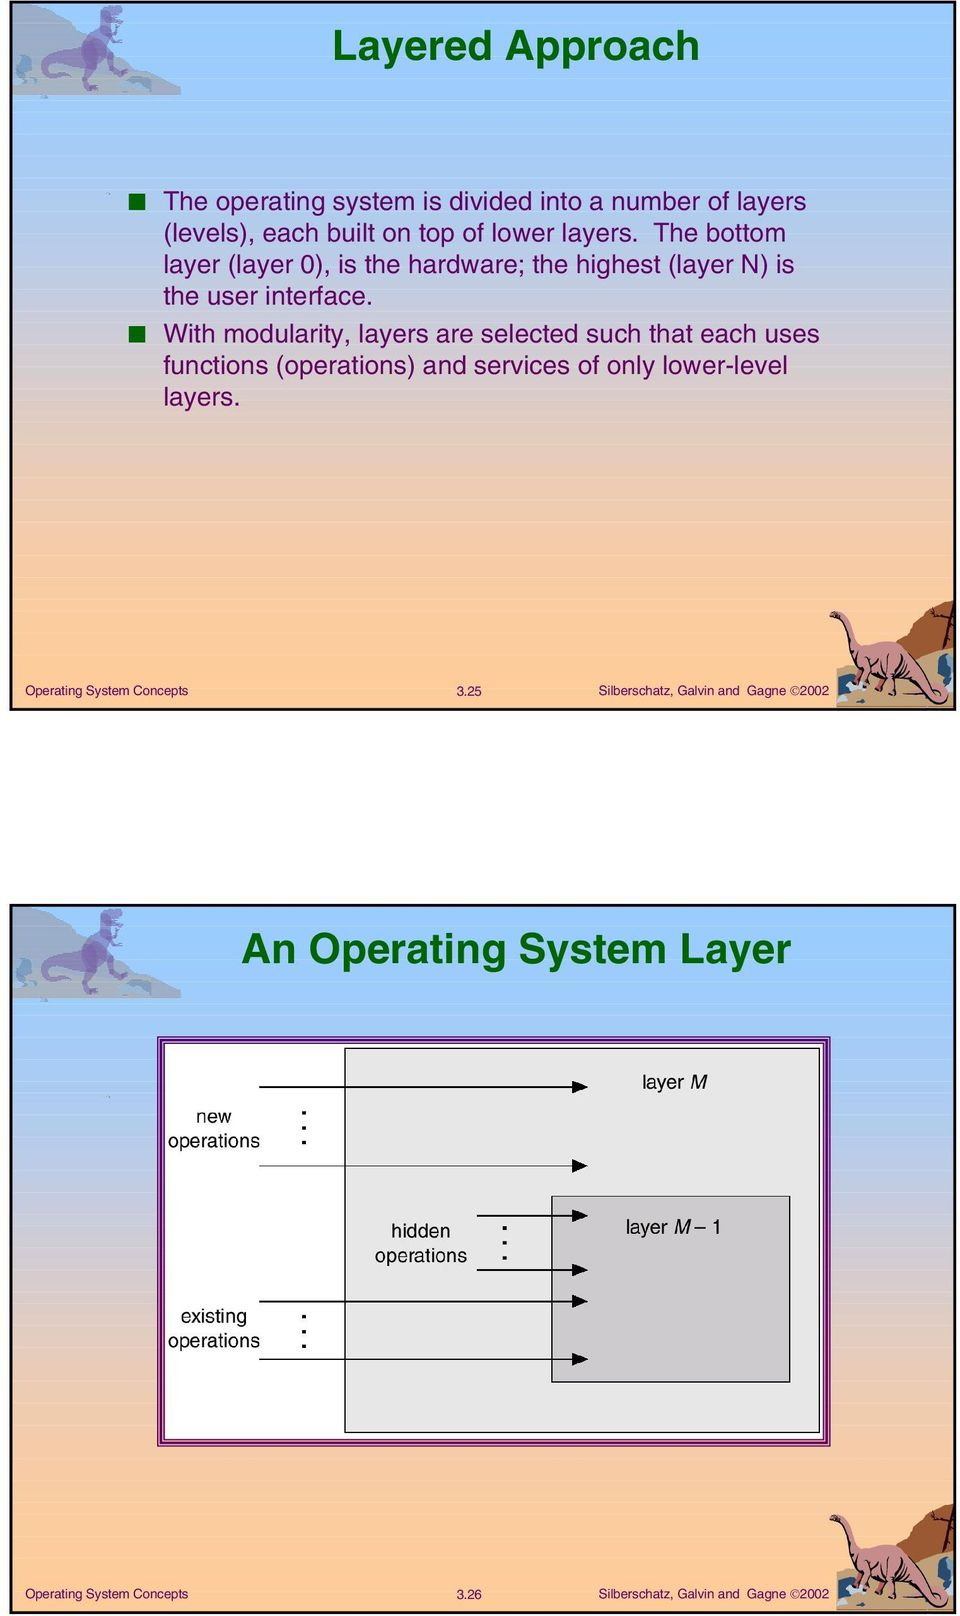 The bottom layer (layer 0), is the hardware; the highest (layer N) is the user interface.